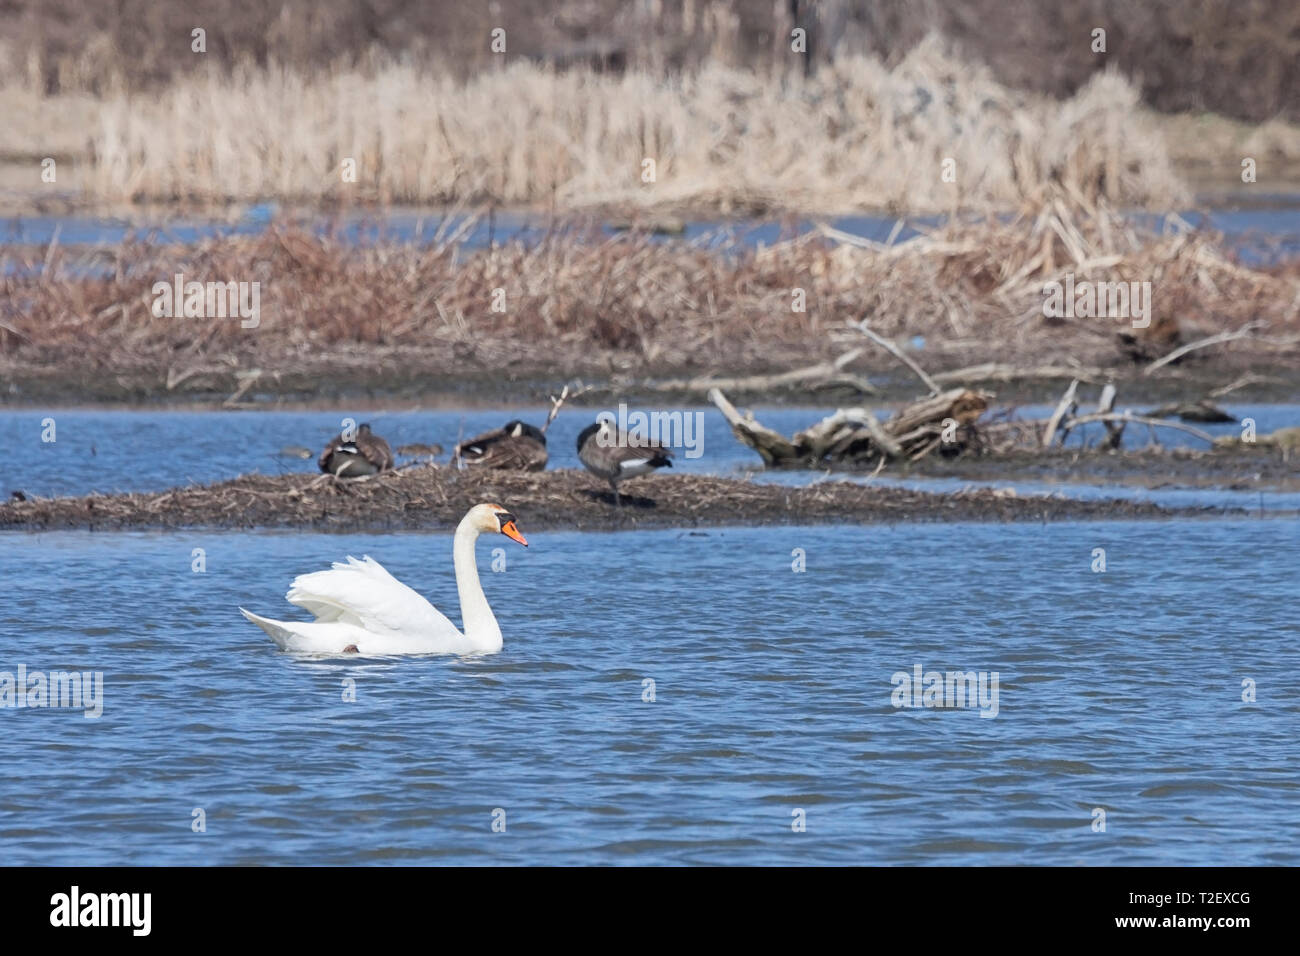 In the Dupage River, a mute swan drifts past three sleeping geese. The swan, wings raised like a sail, quietly floats in the rippled waters. - Stock Image